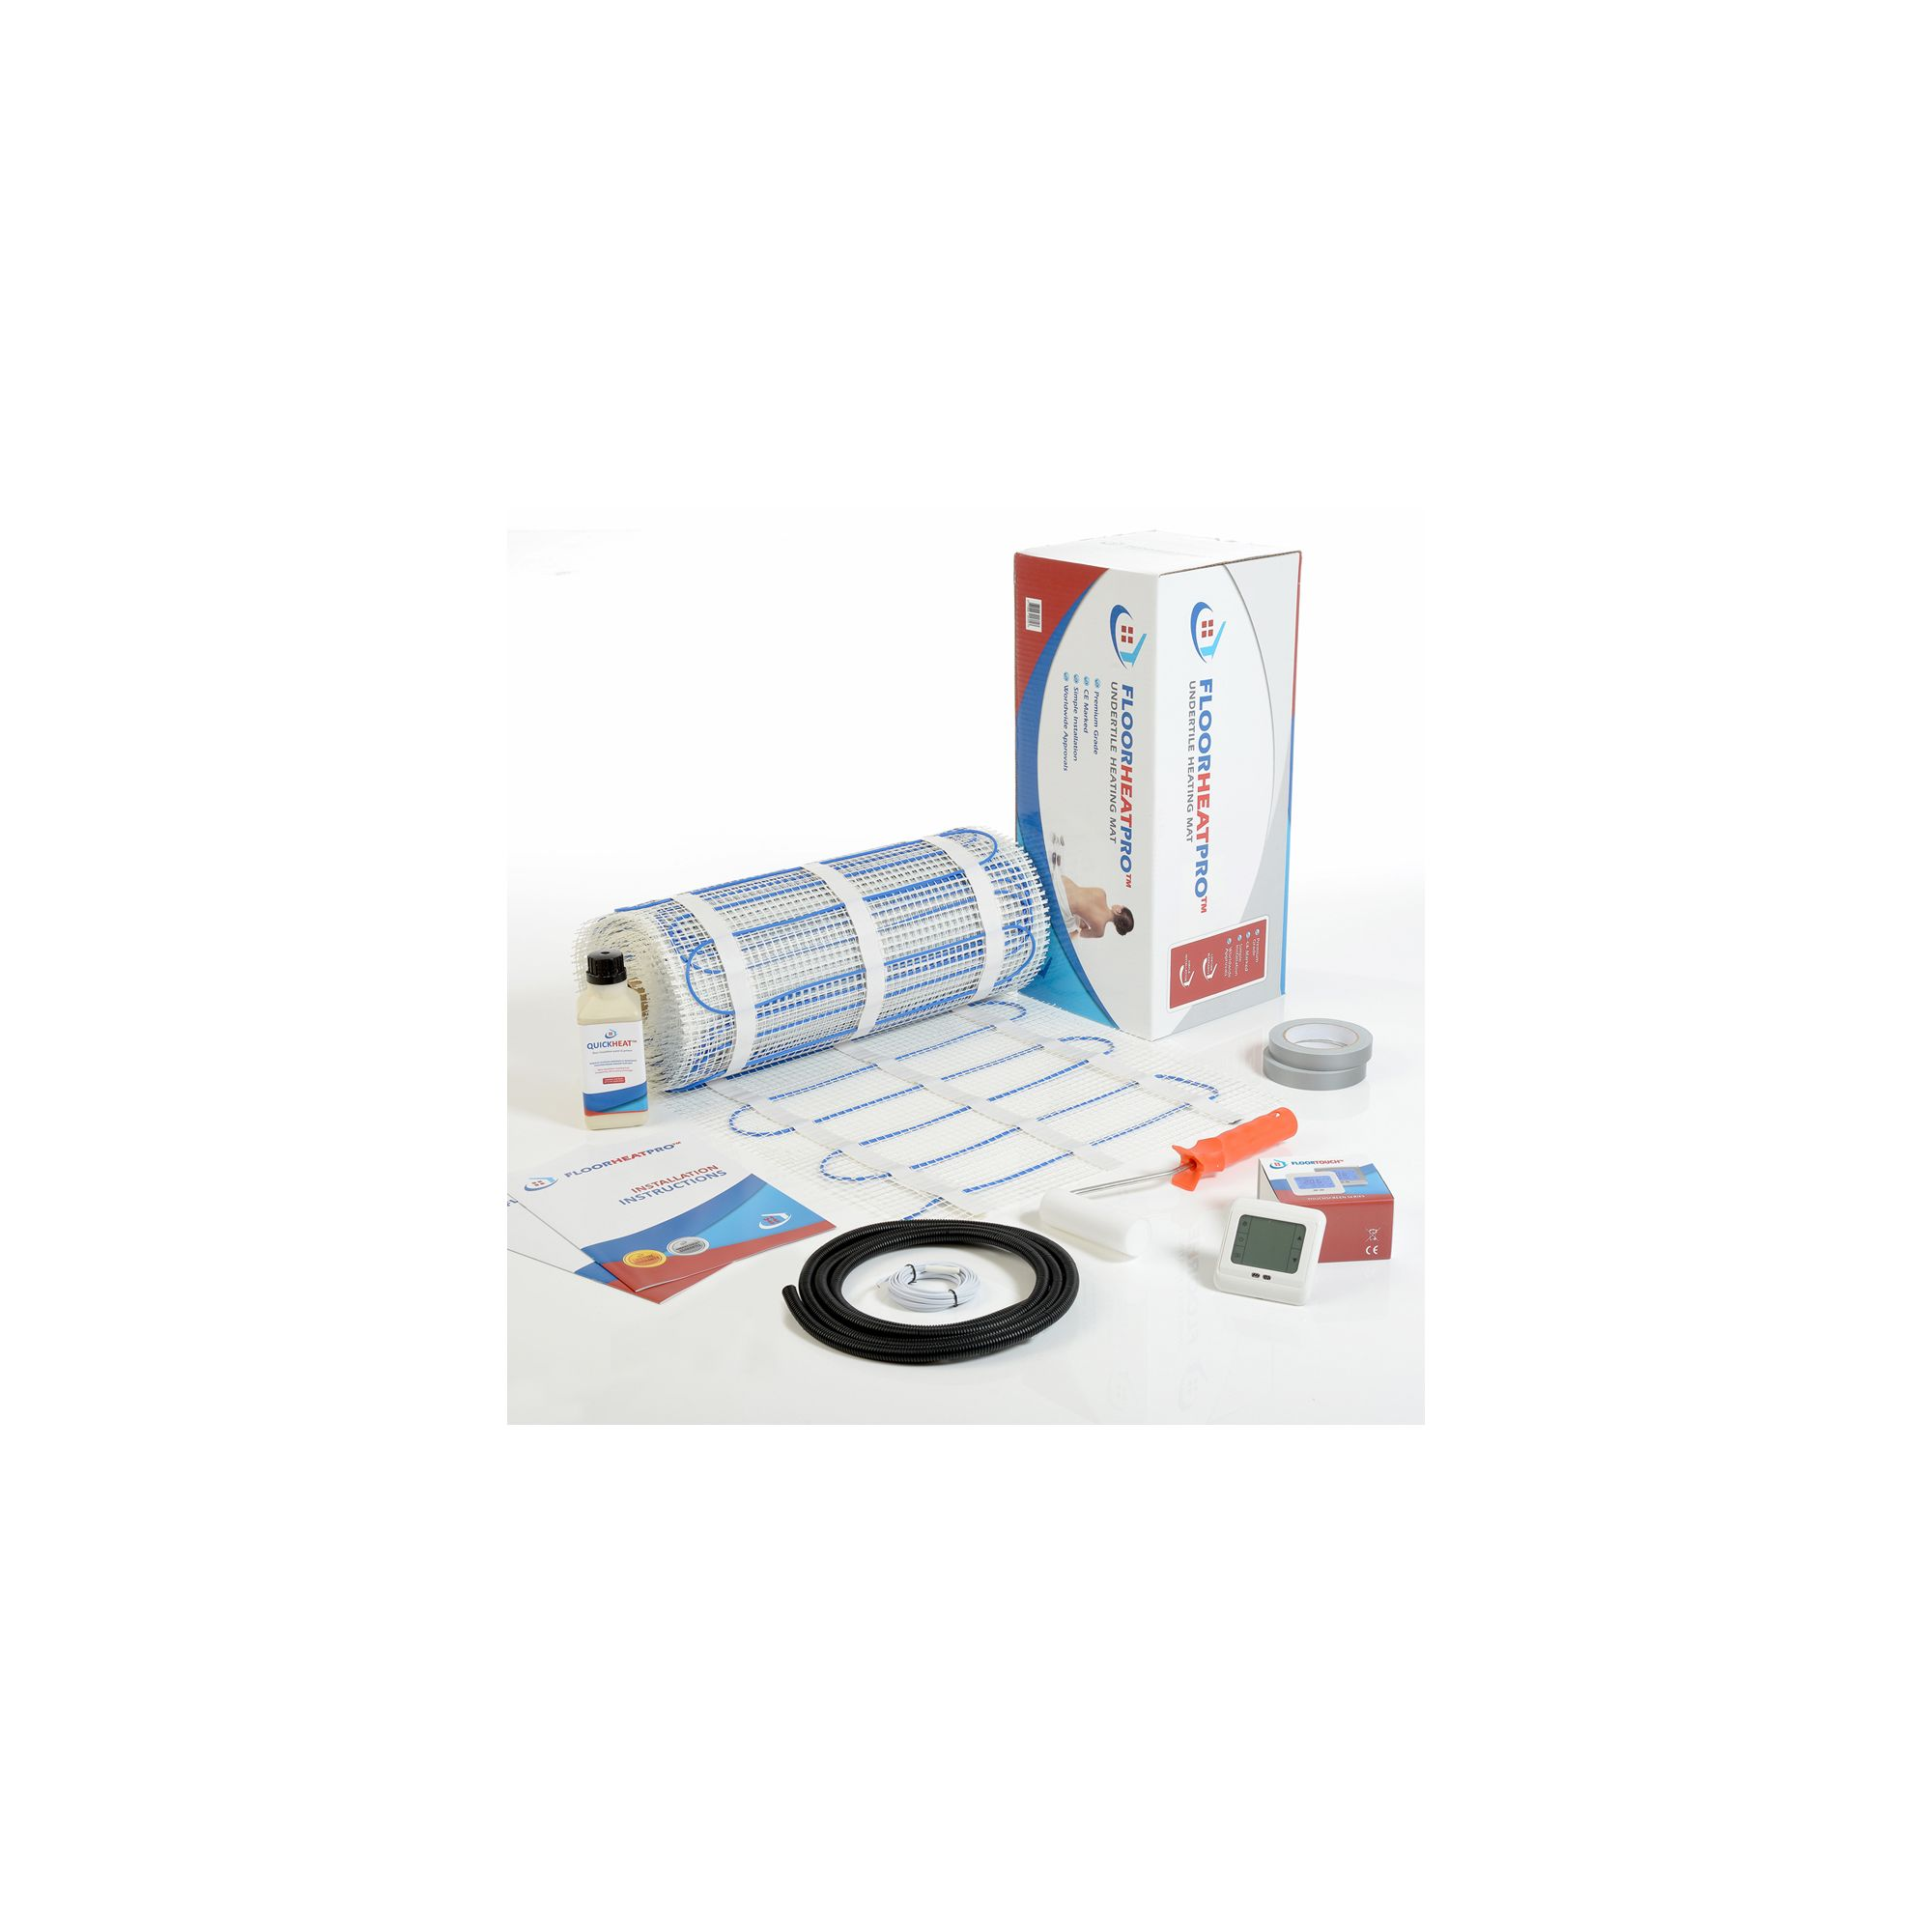 14.0m2 - Underfloor Electric Heating Kit 150w/m2 - Tiles at Tescos Direct